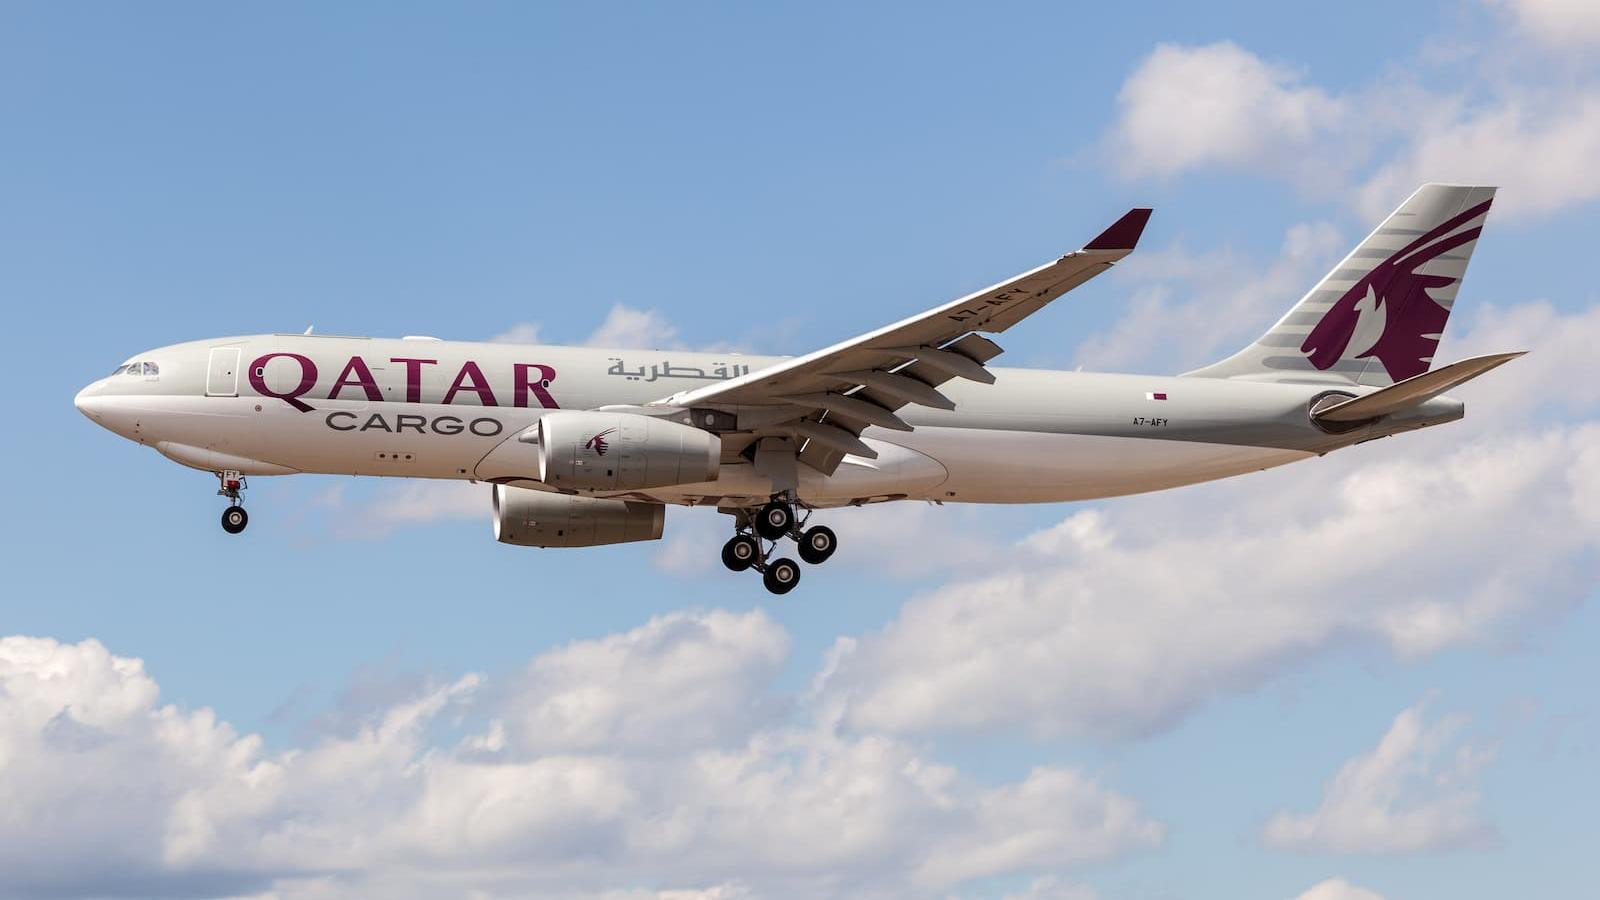 Qatar Airways, GWC invite local communities to support COVID-19 relief efforts for India